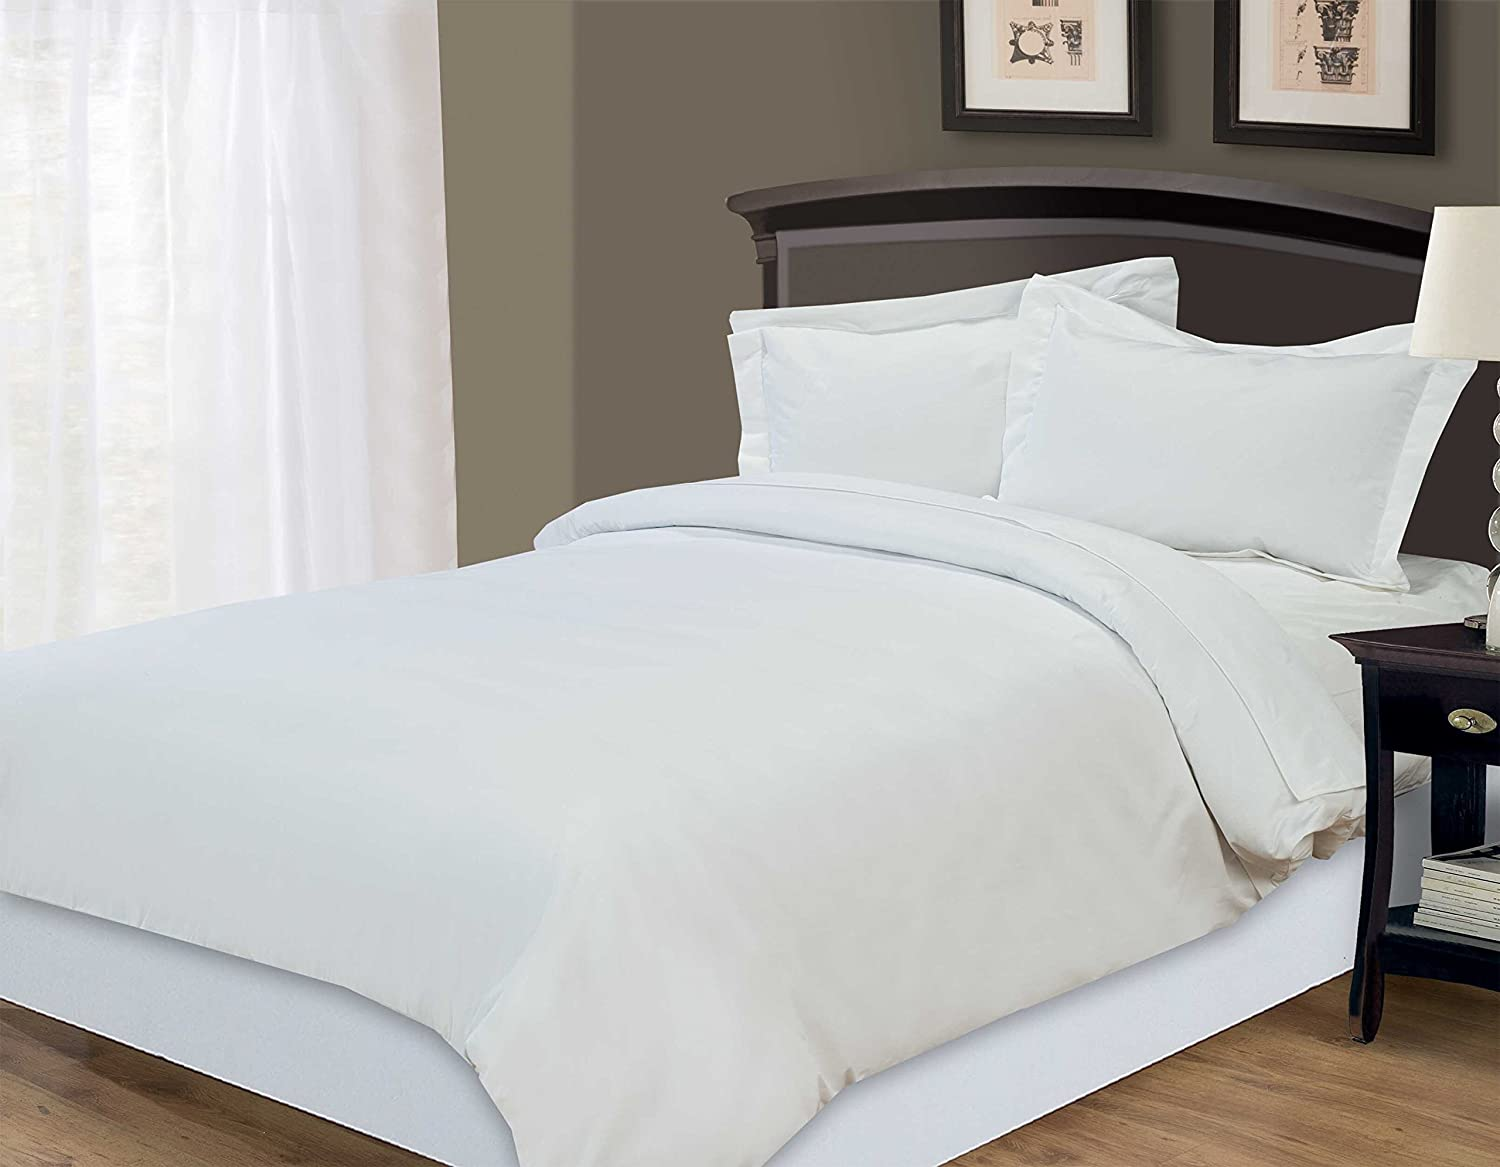 Luxury White 800 Thread Count Sateen 100% Cotton Bedding Fitted Sheet  (King): Amazon.co.uk: Kitchen U0026 Home